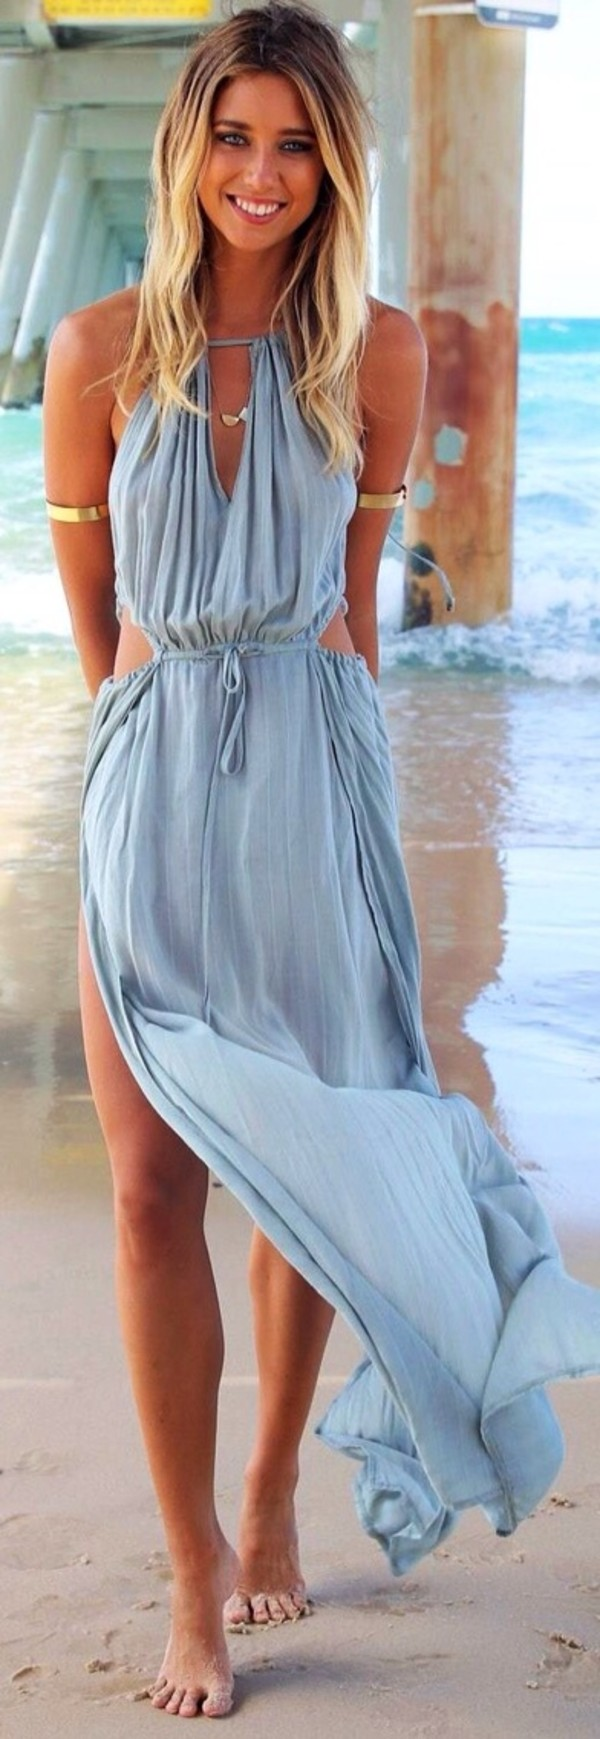 dress grey maxi cutout beach beach beach dress summer dress cut-out dress maxi dress long dress blue blue dress light blue light blue dress cover up jewels gold arm bands hippie ocean dress style blue cut out maxi dress summer fashion elegant maxi boho flowy